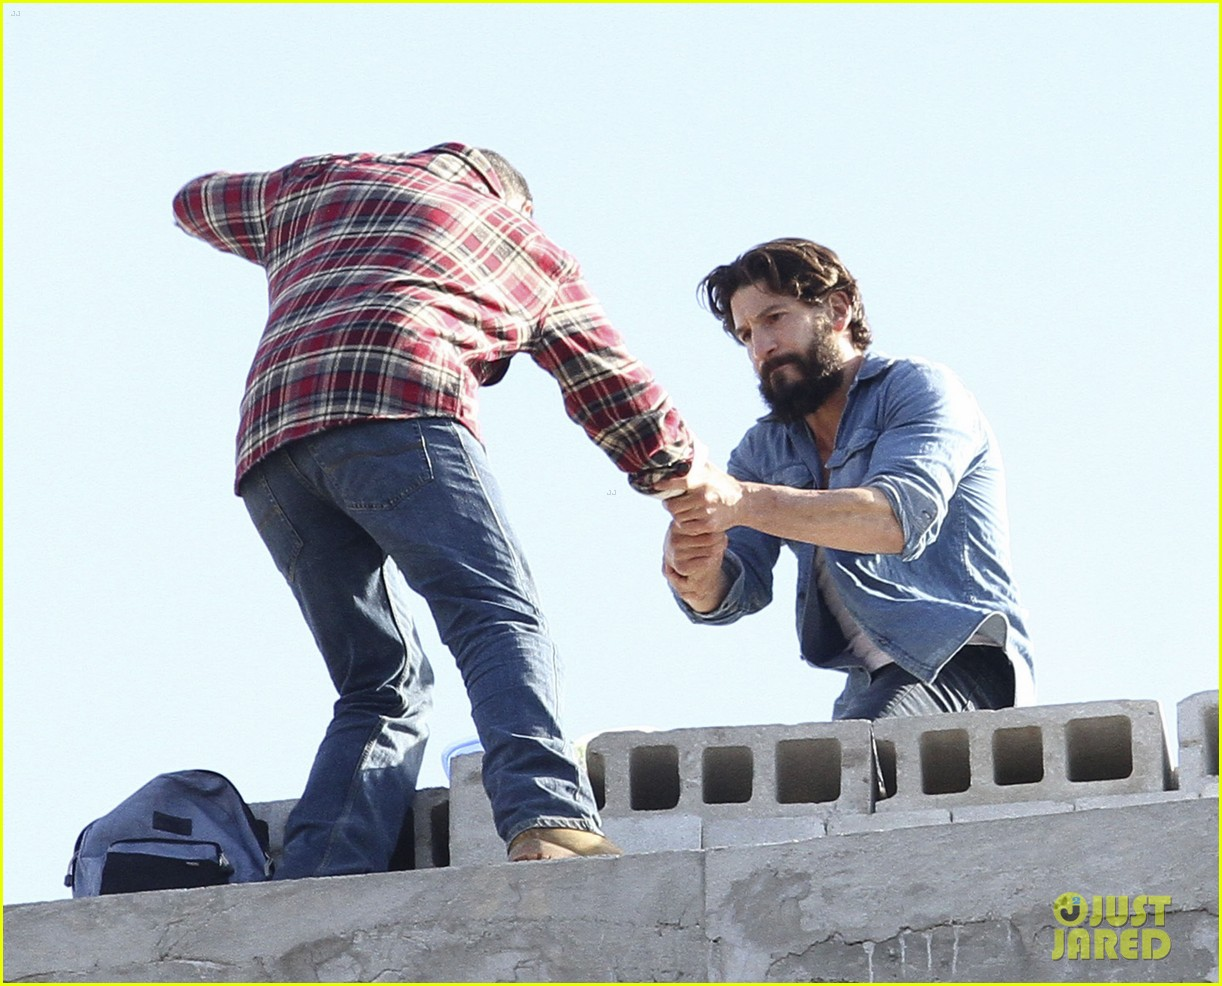 52201452 Jon Bernthal doing his own stunts for his upcoming Netflix series 'The Punisher' in Brooklyn's Green Point area on October 12, 2016. The actor can be seen on the ledge of a seven-story building alongside his costar Lucca De Oliveira. FameFlynet, Inc - Beverly Hills, CA, USA - +1 (310) 505-9876